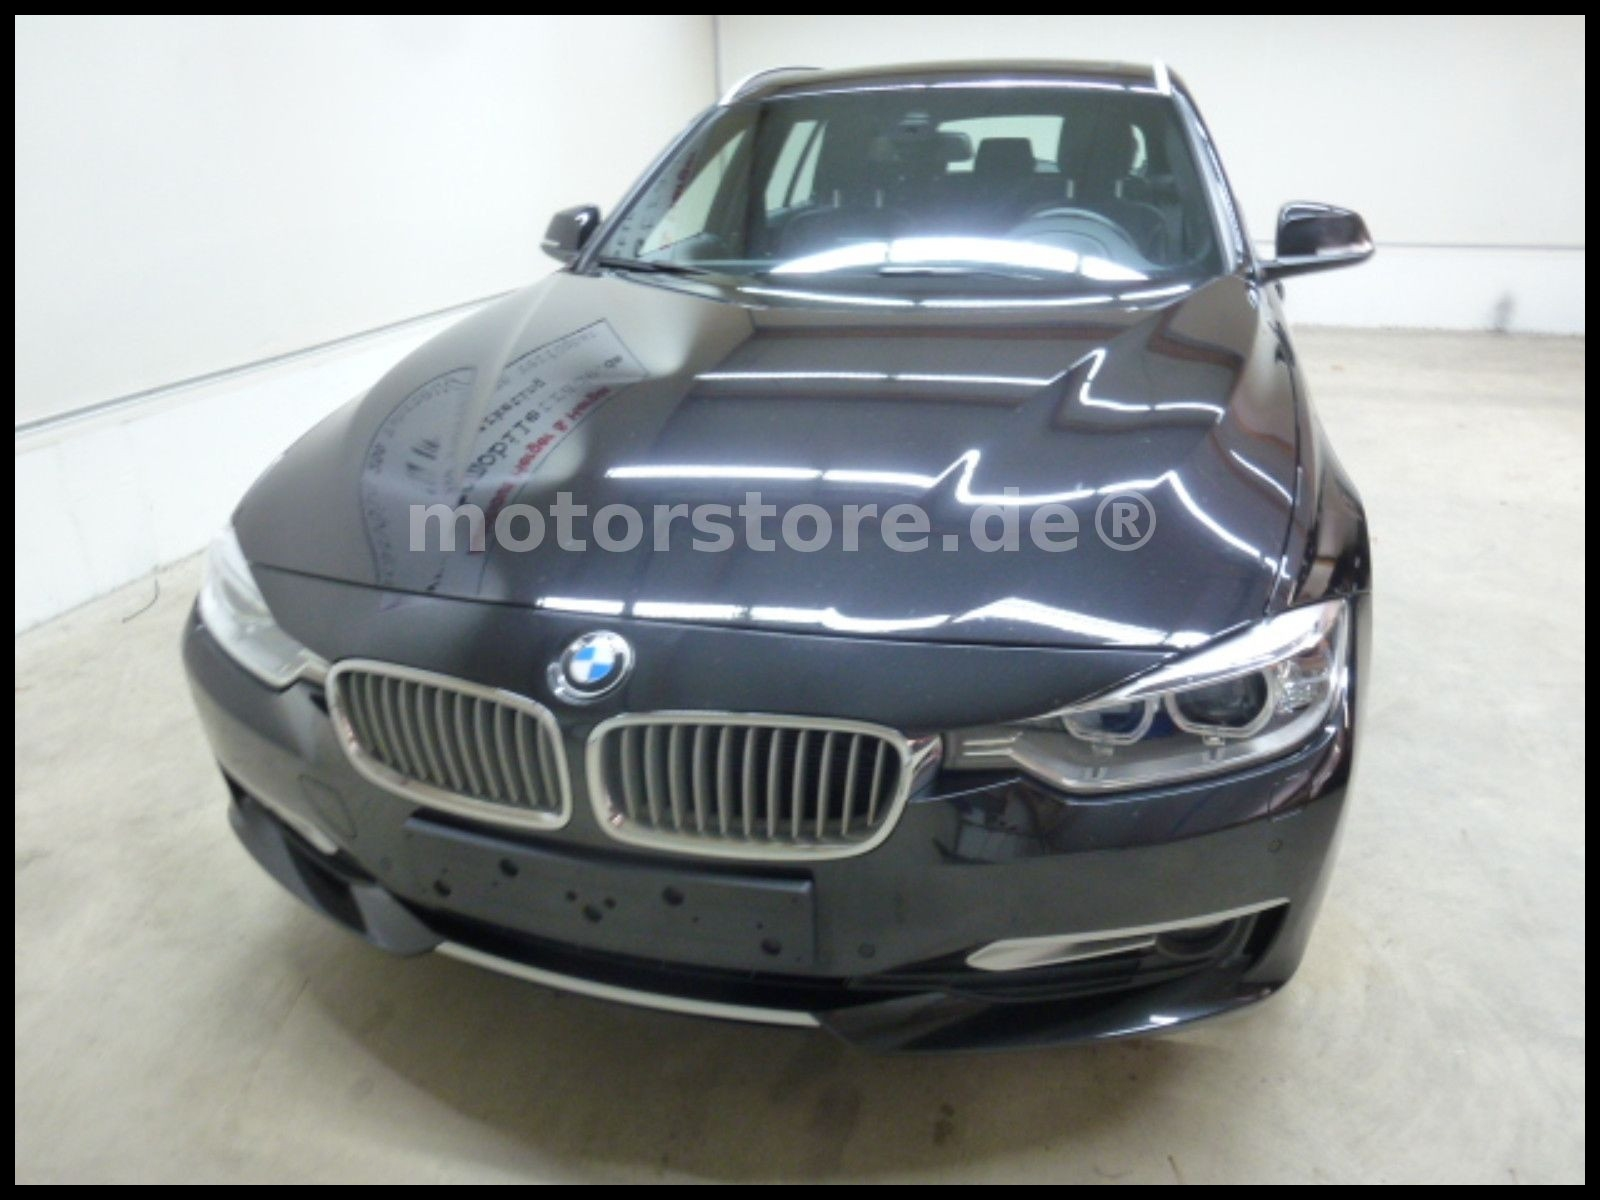 Bmw 3 Series Wiki Awesome Bmw F31 320d Xdrive Technische Daten Bmw 3 Series Wiki